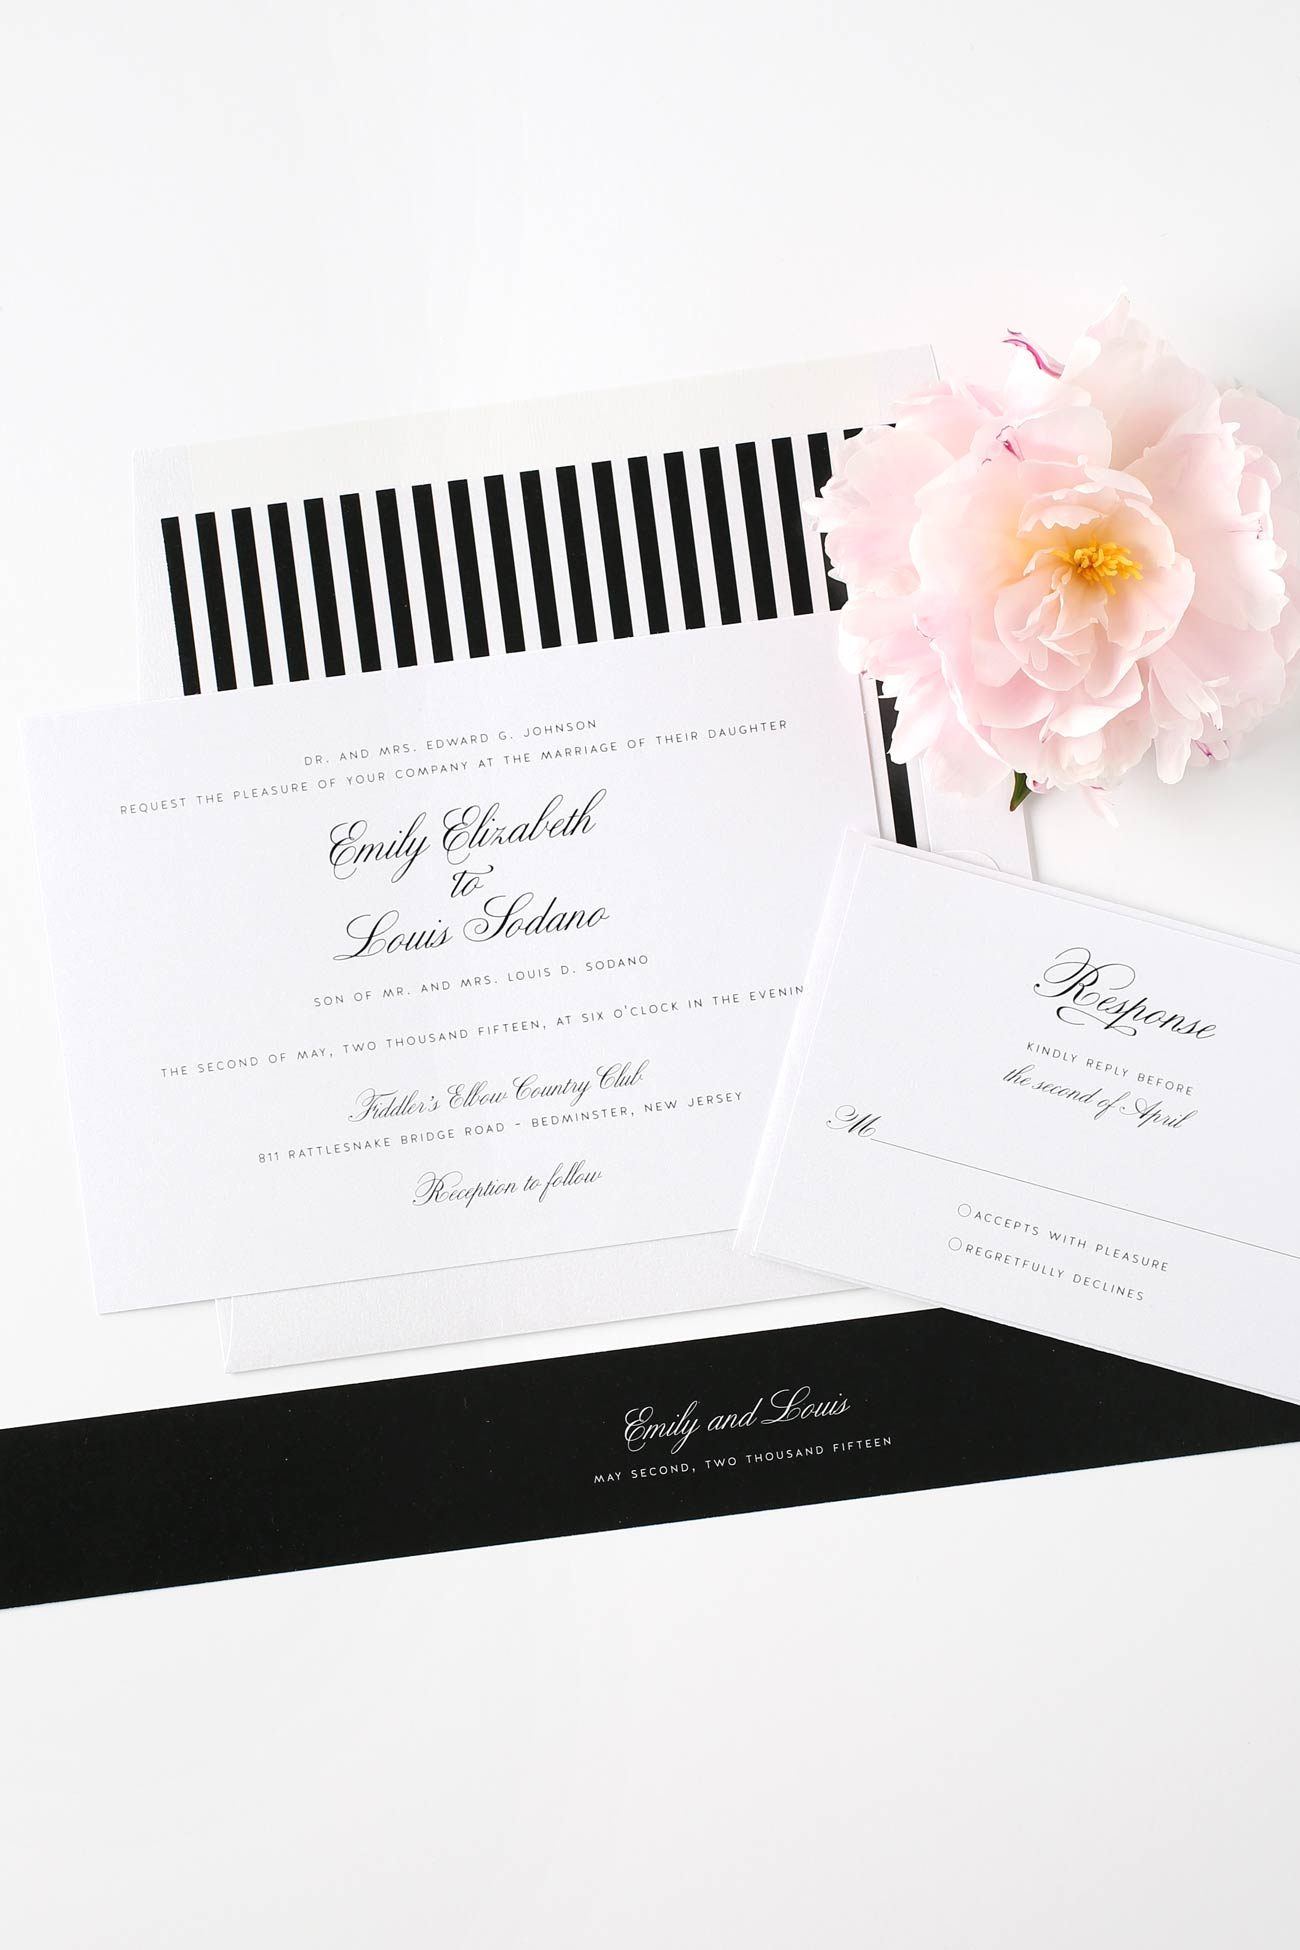 Tesco Wedding Invitations Image collections - Party Invitations Ideas